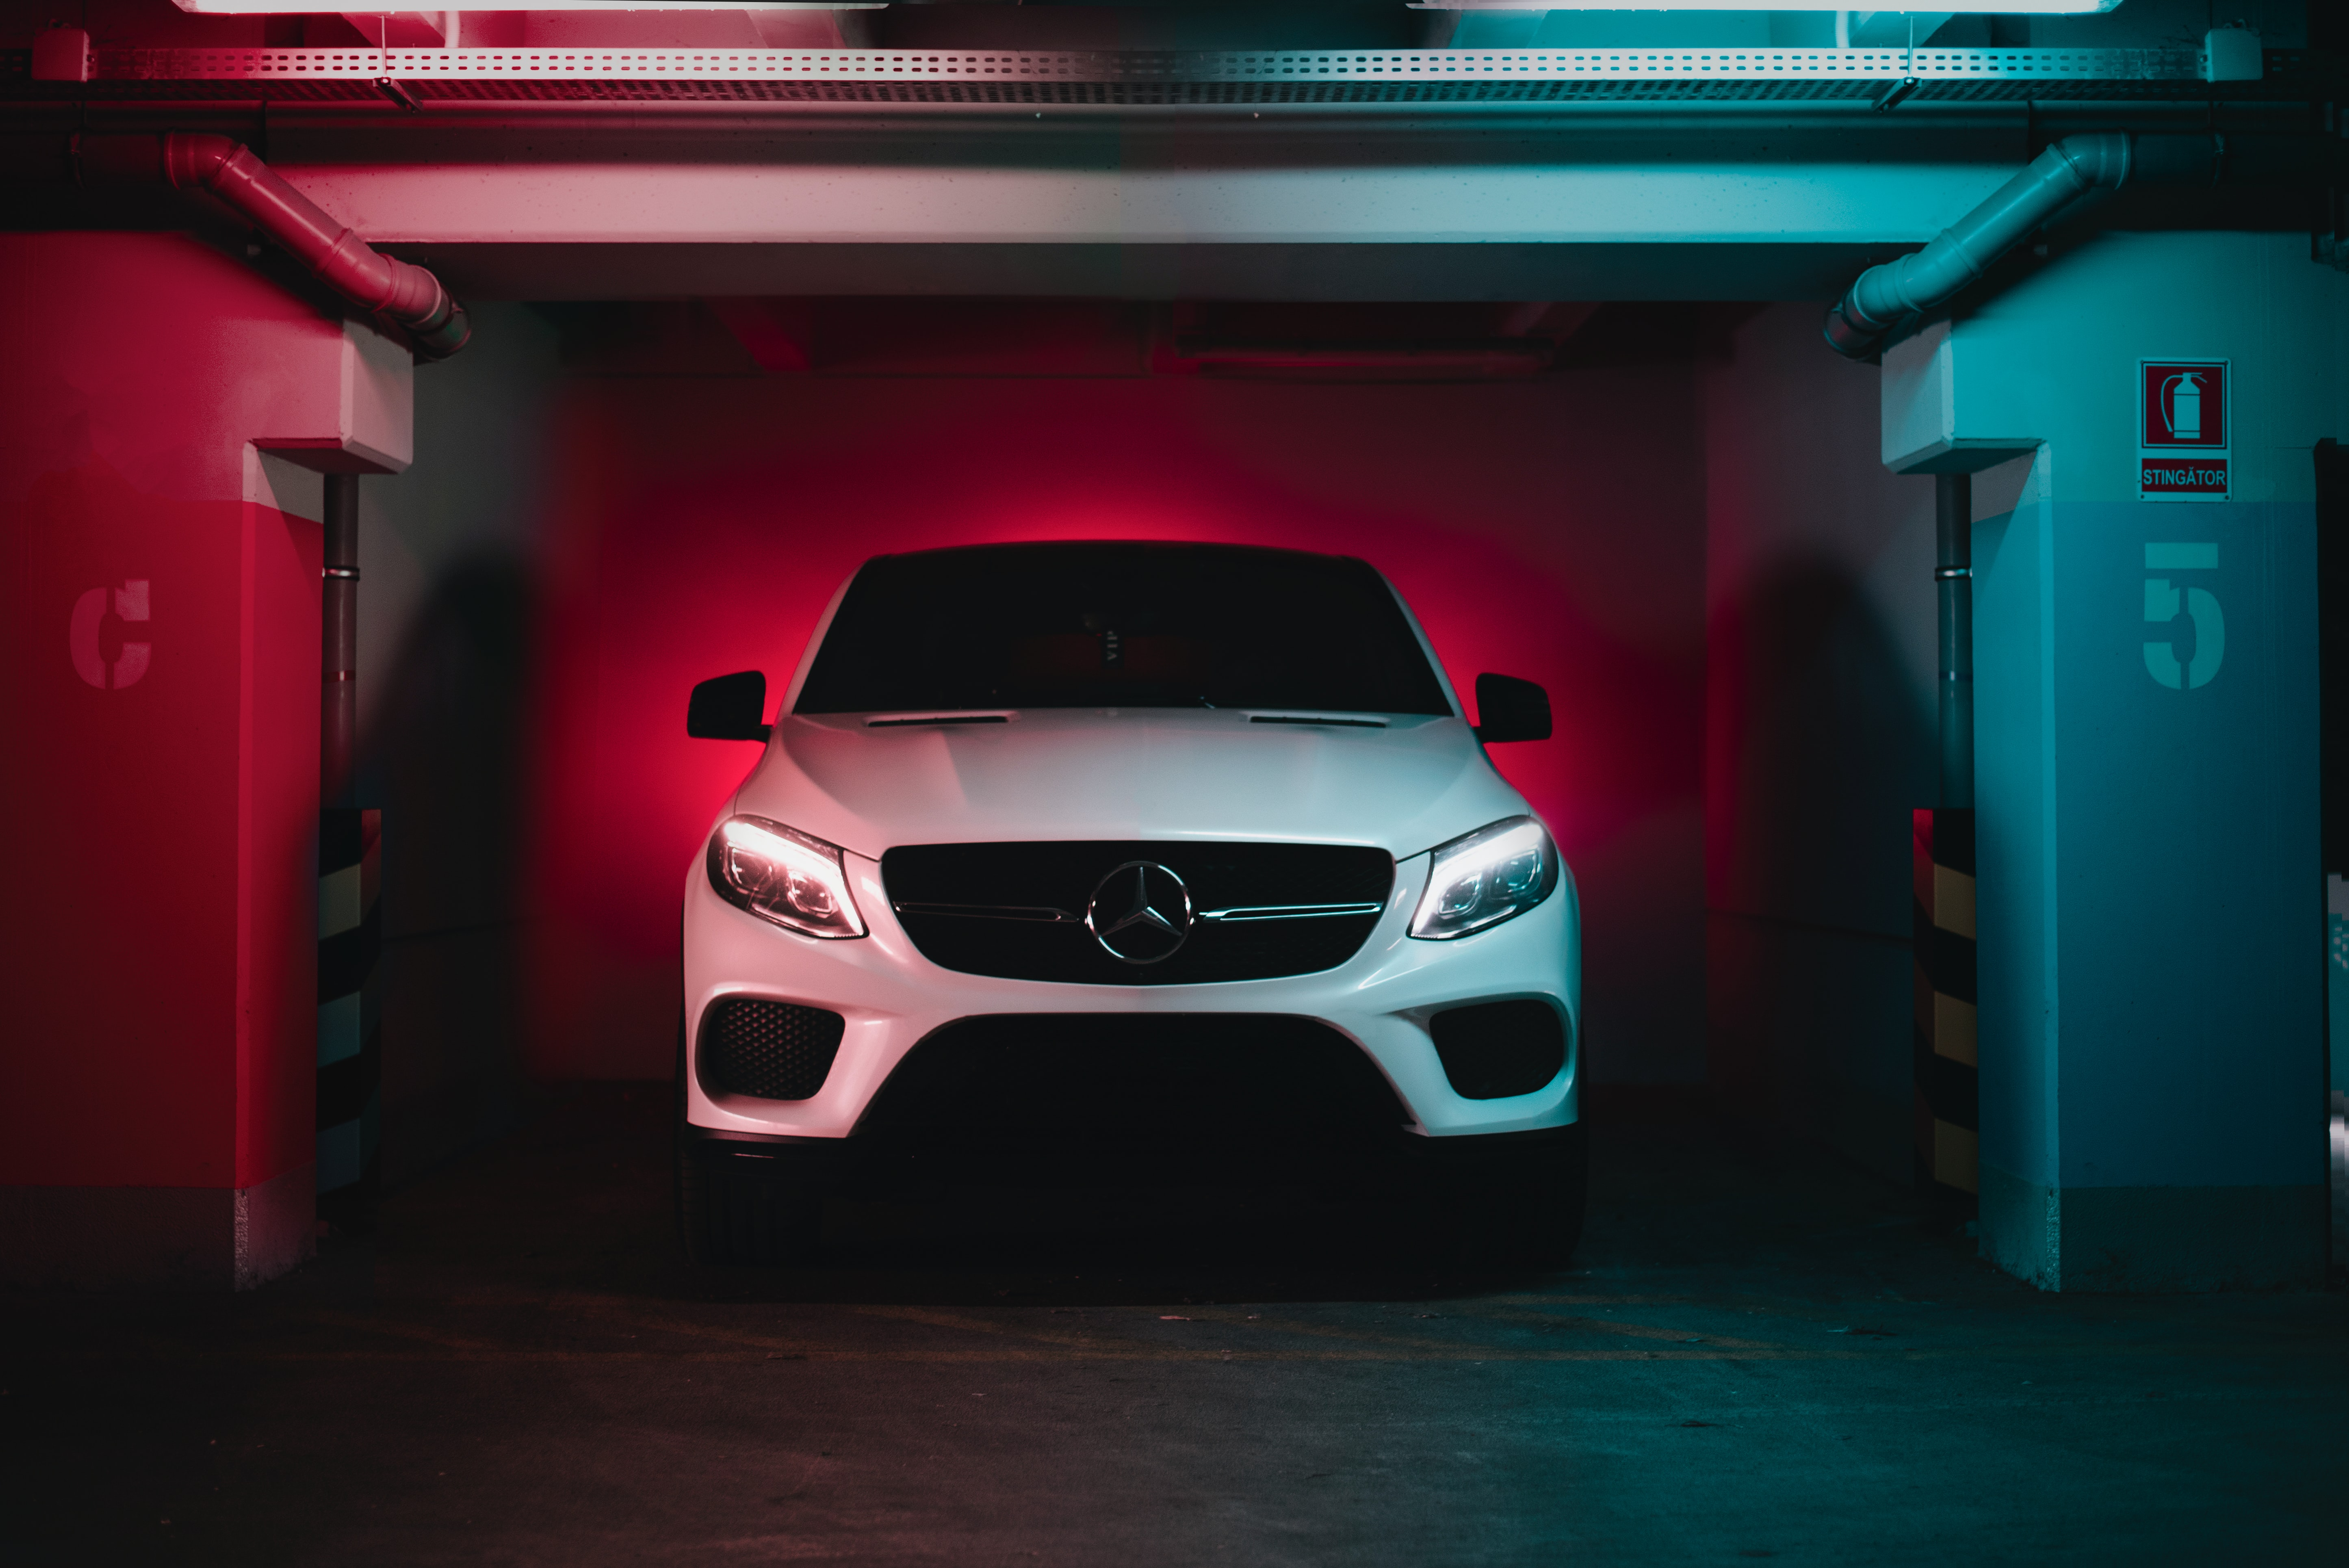 White car in an indoor car park with tail lights on making it glow red